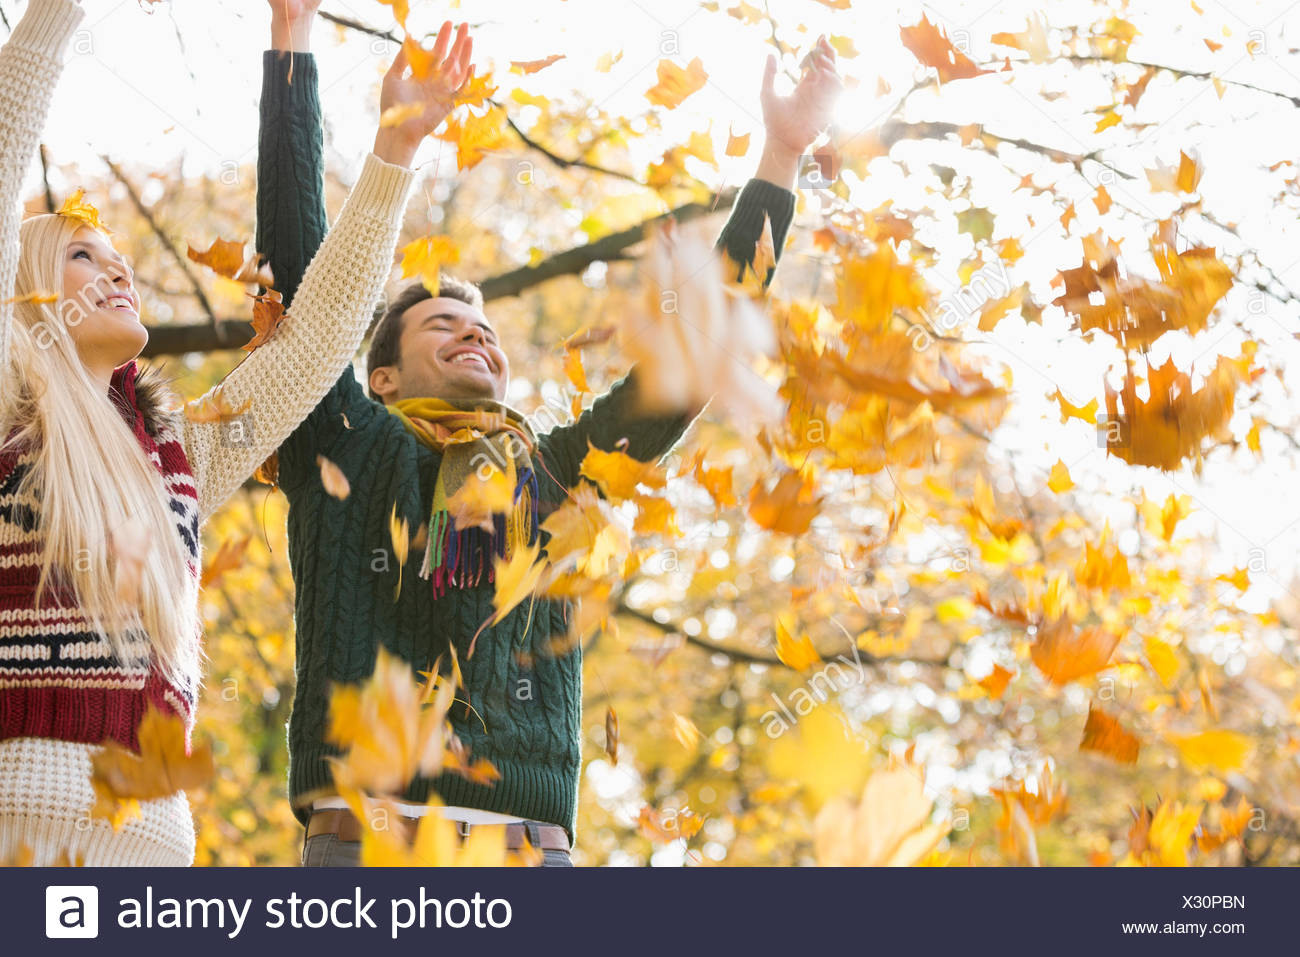 Young couple enjoying falling autumn leaves in park - Stock Image